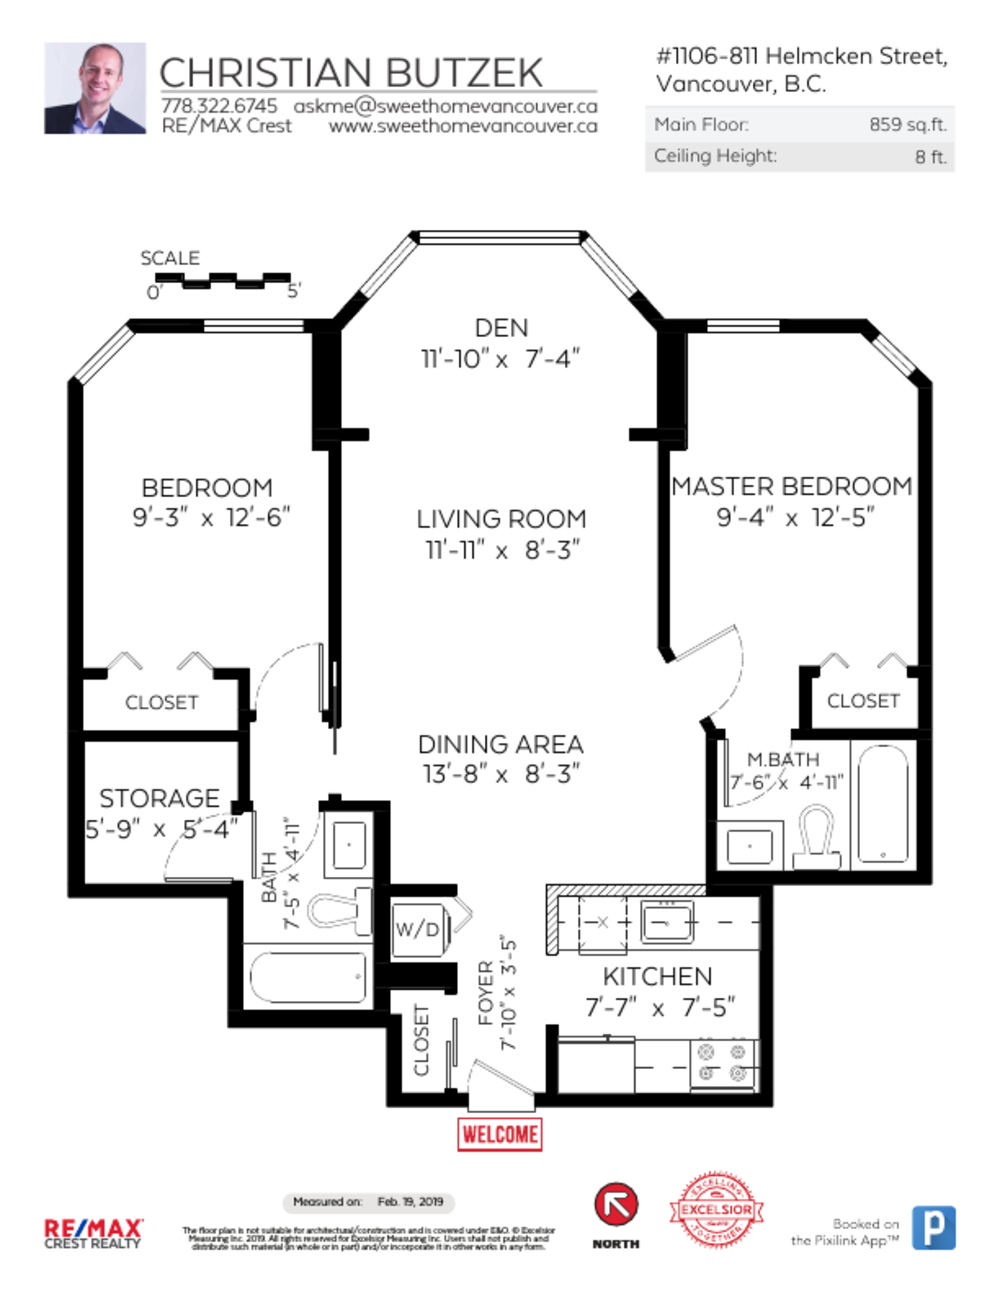 Floor Plan for a 2 Bedroom Apartment in Vancouver